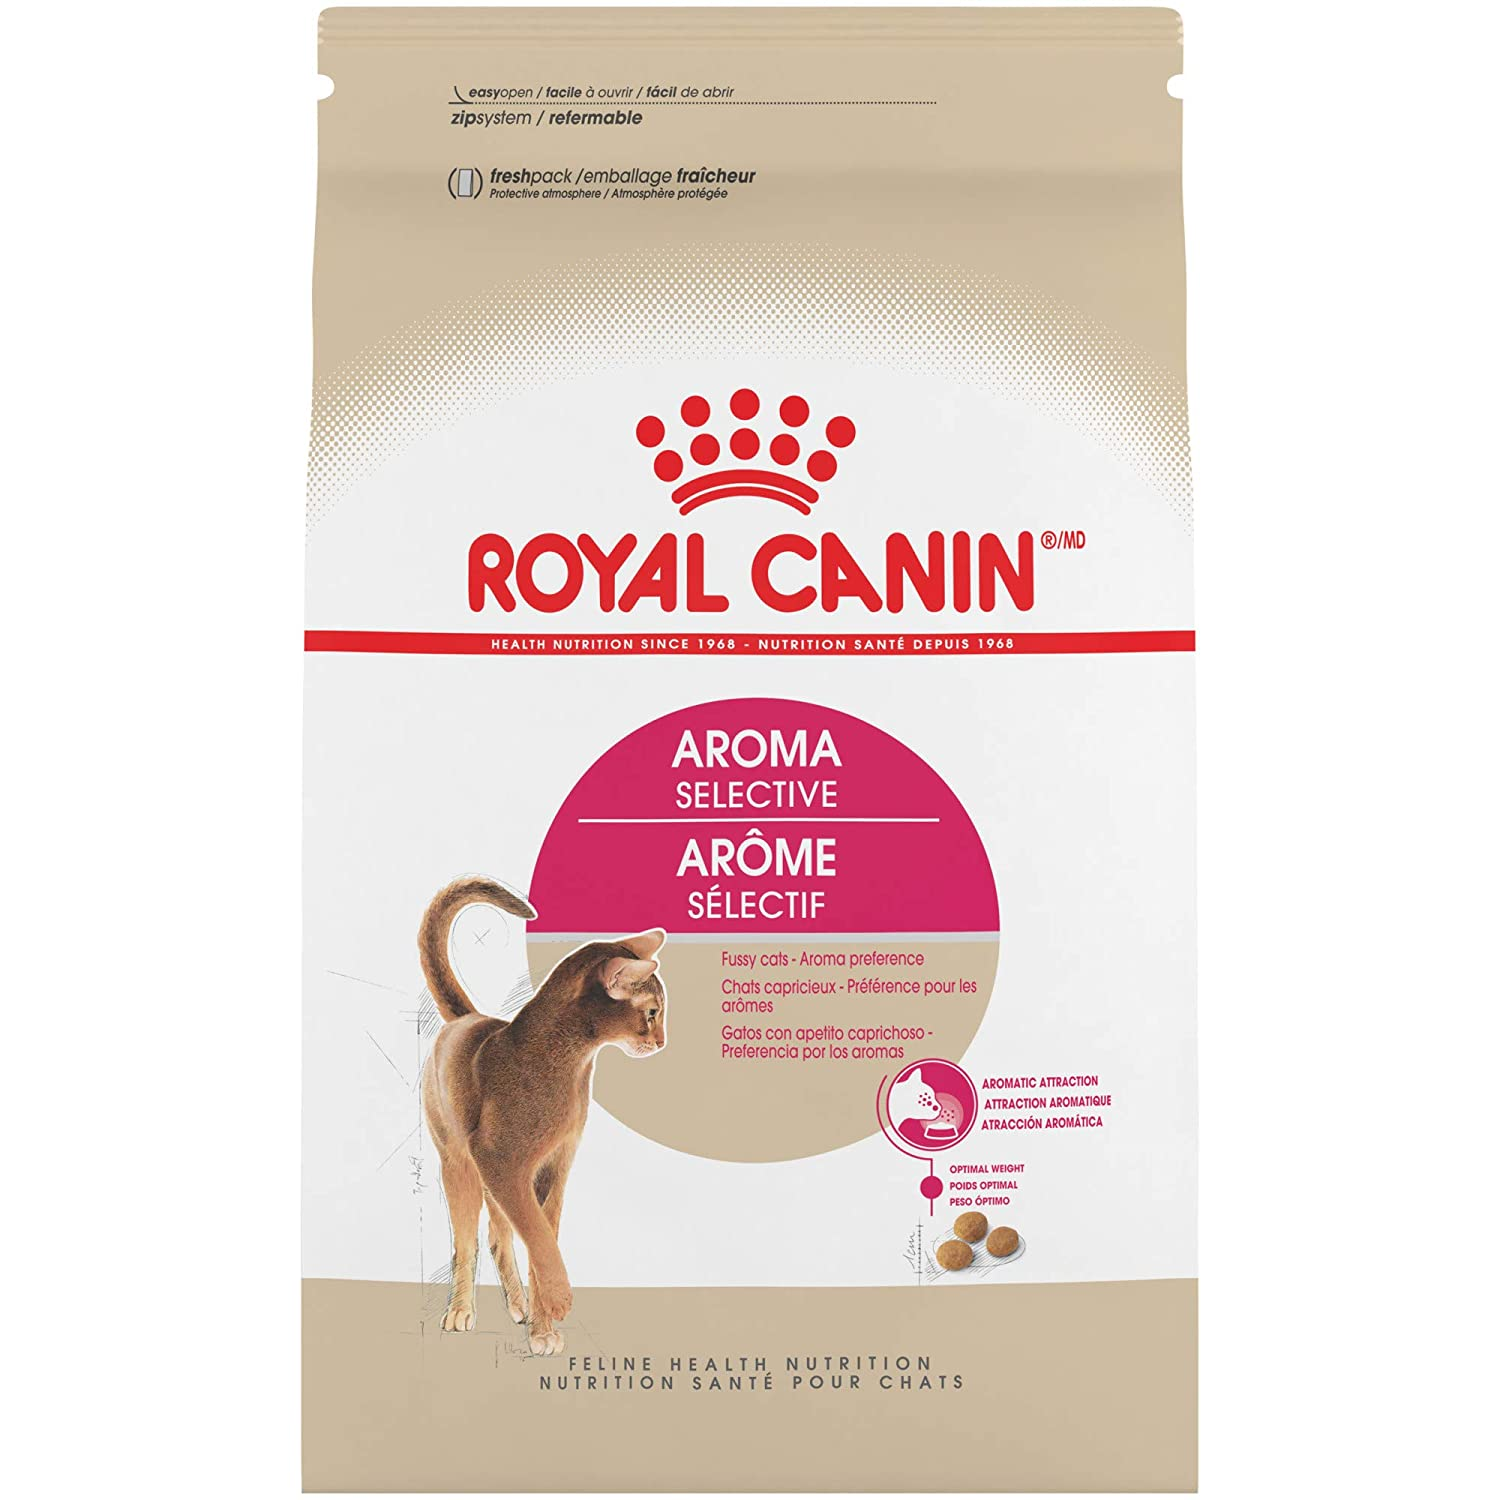 Royal Canin Feline Health Nutrition Selective 31 Aromatic Attraction Dry Cat Food